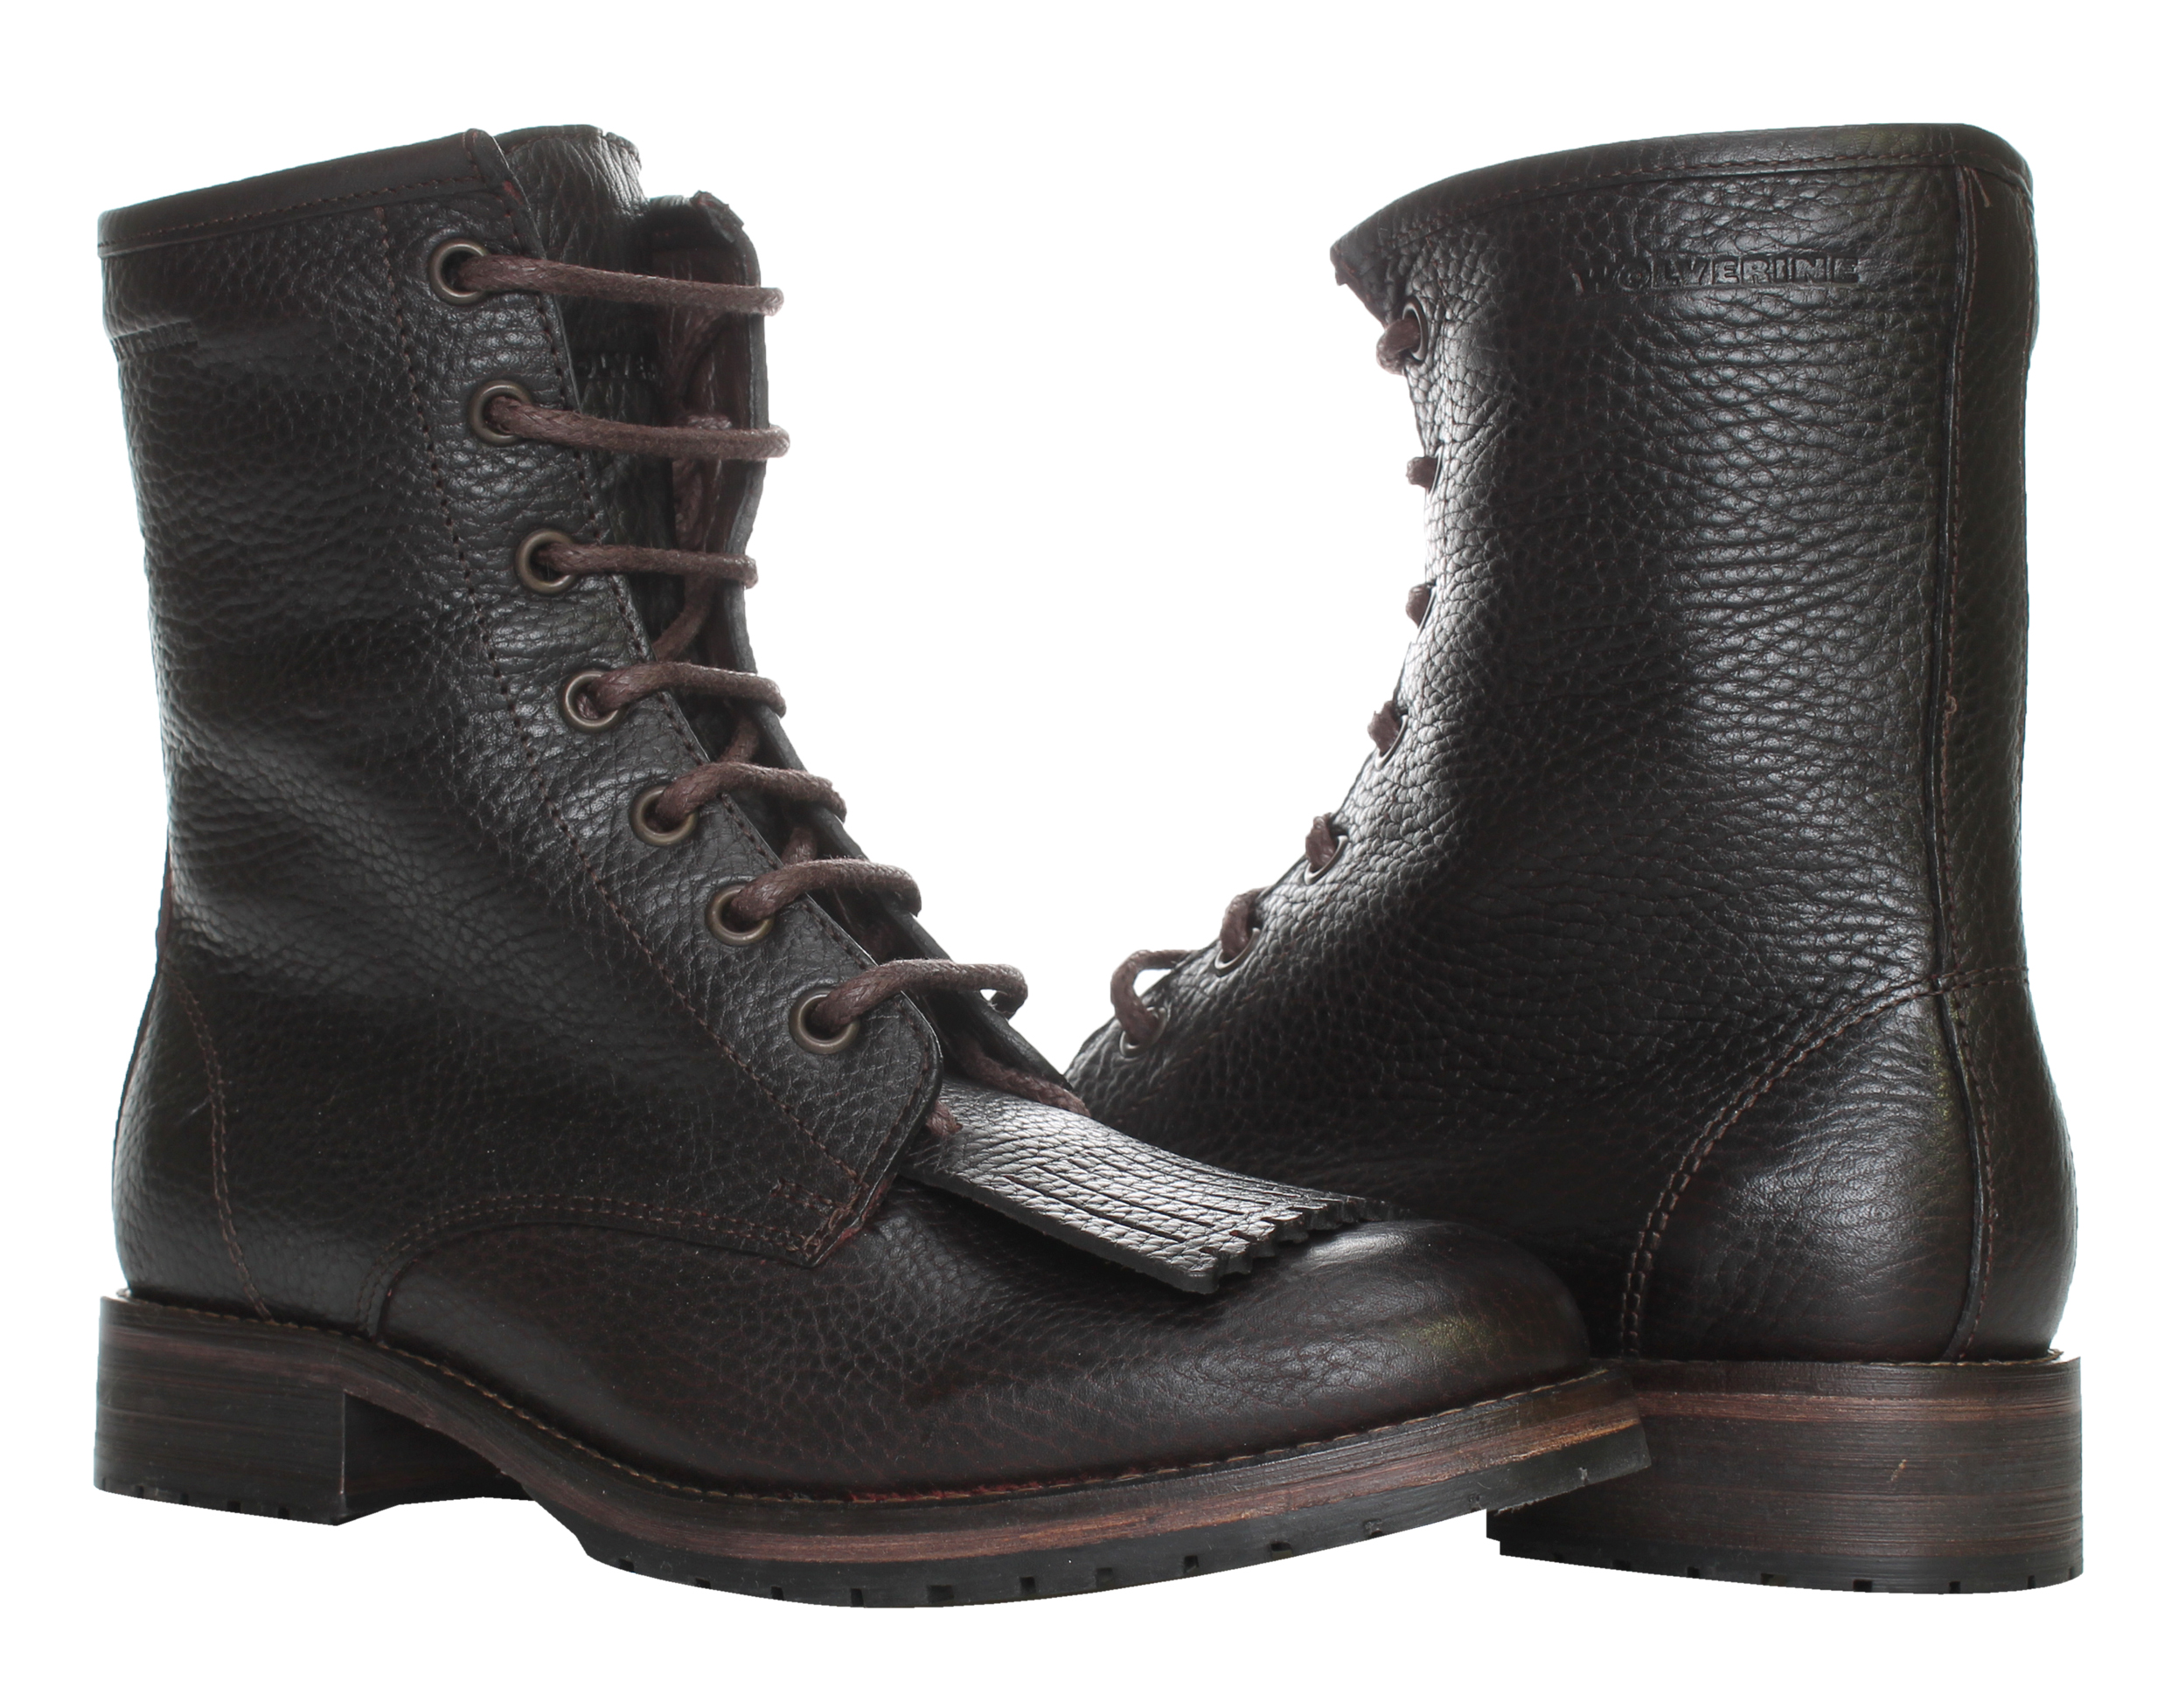 1883 by Wolverine Rosie 6 Kiltie Lace Up Burgundy Leather Women's Boots W40078 by Wolverine